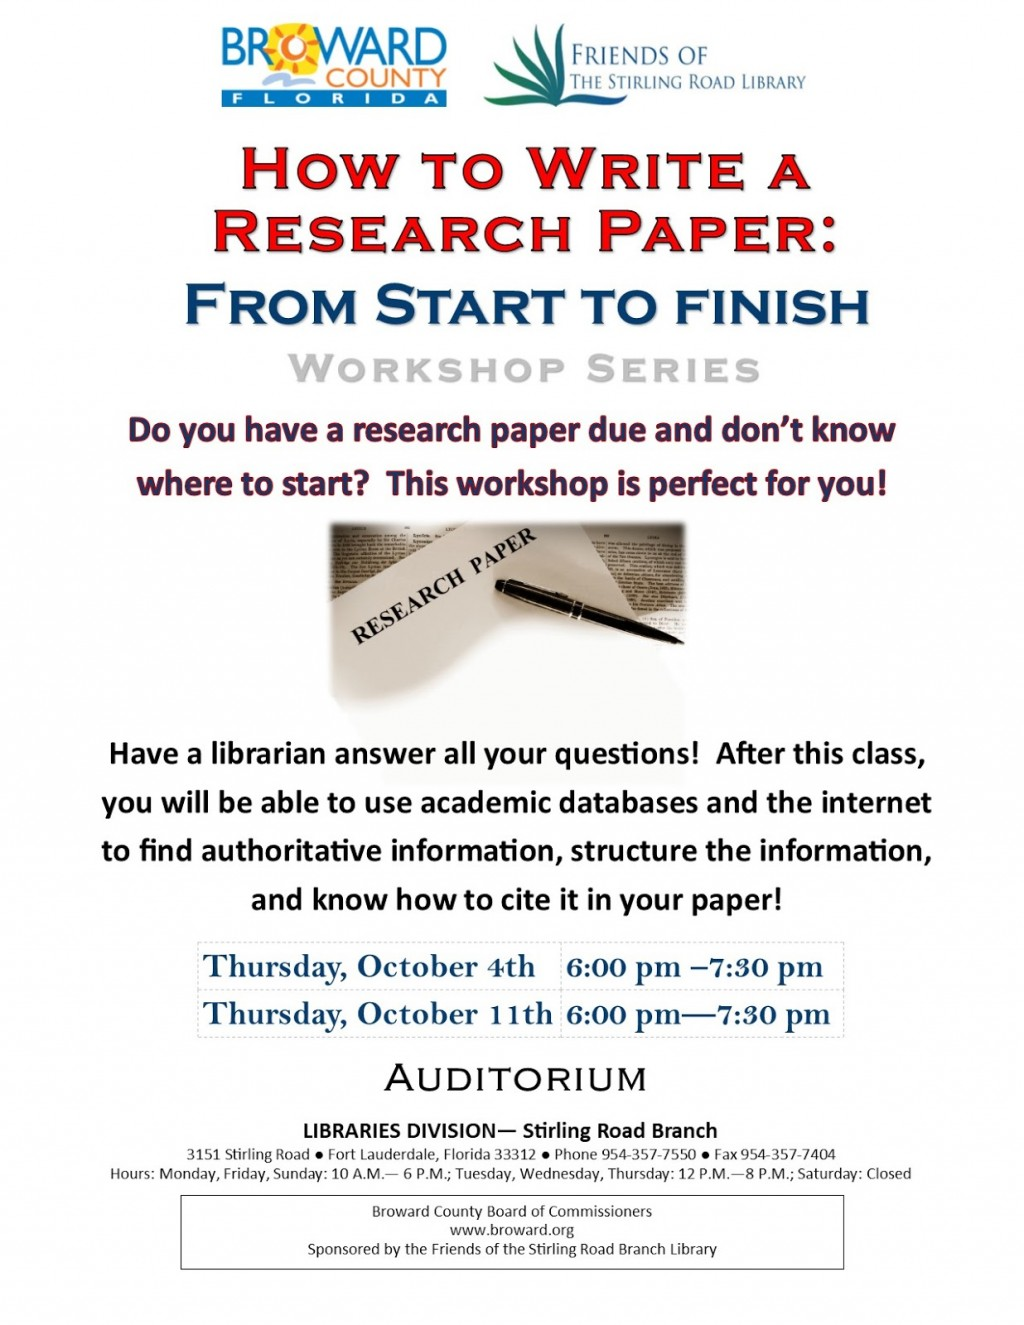 014 How To Write Research Paper Frightening Abstract For Sample Proposal A Summary Of Your Large